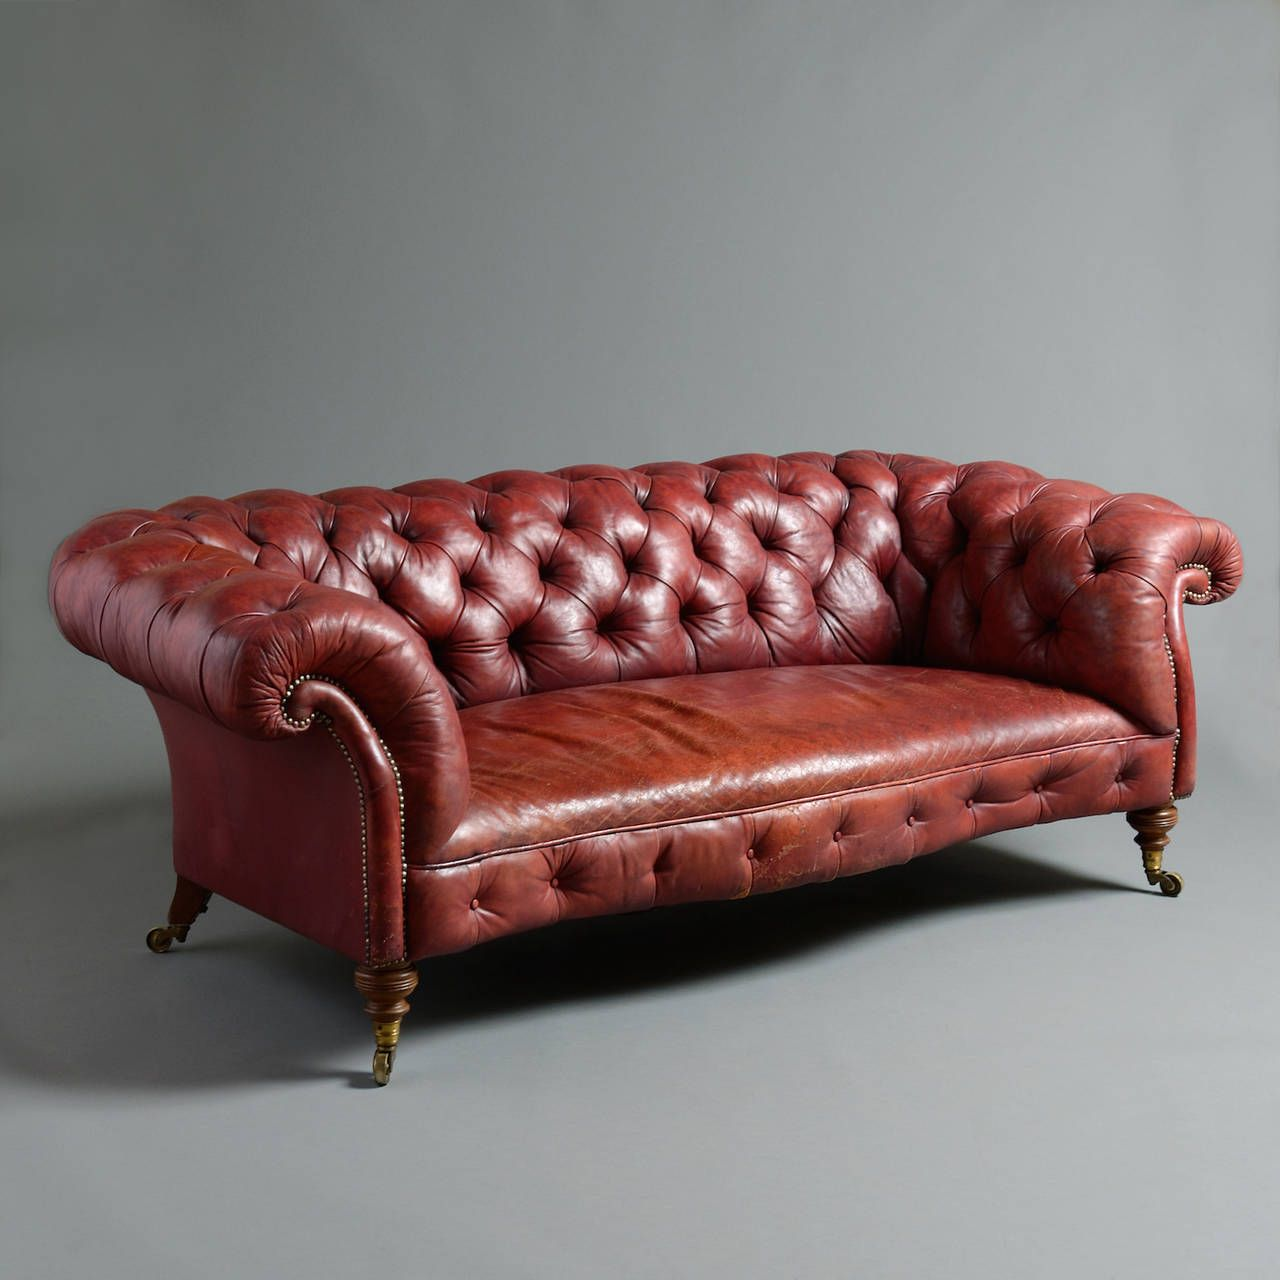 Howard leather sofa 2 red leather sofa oversized chair